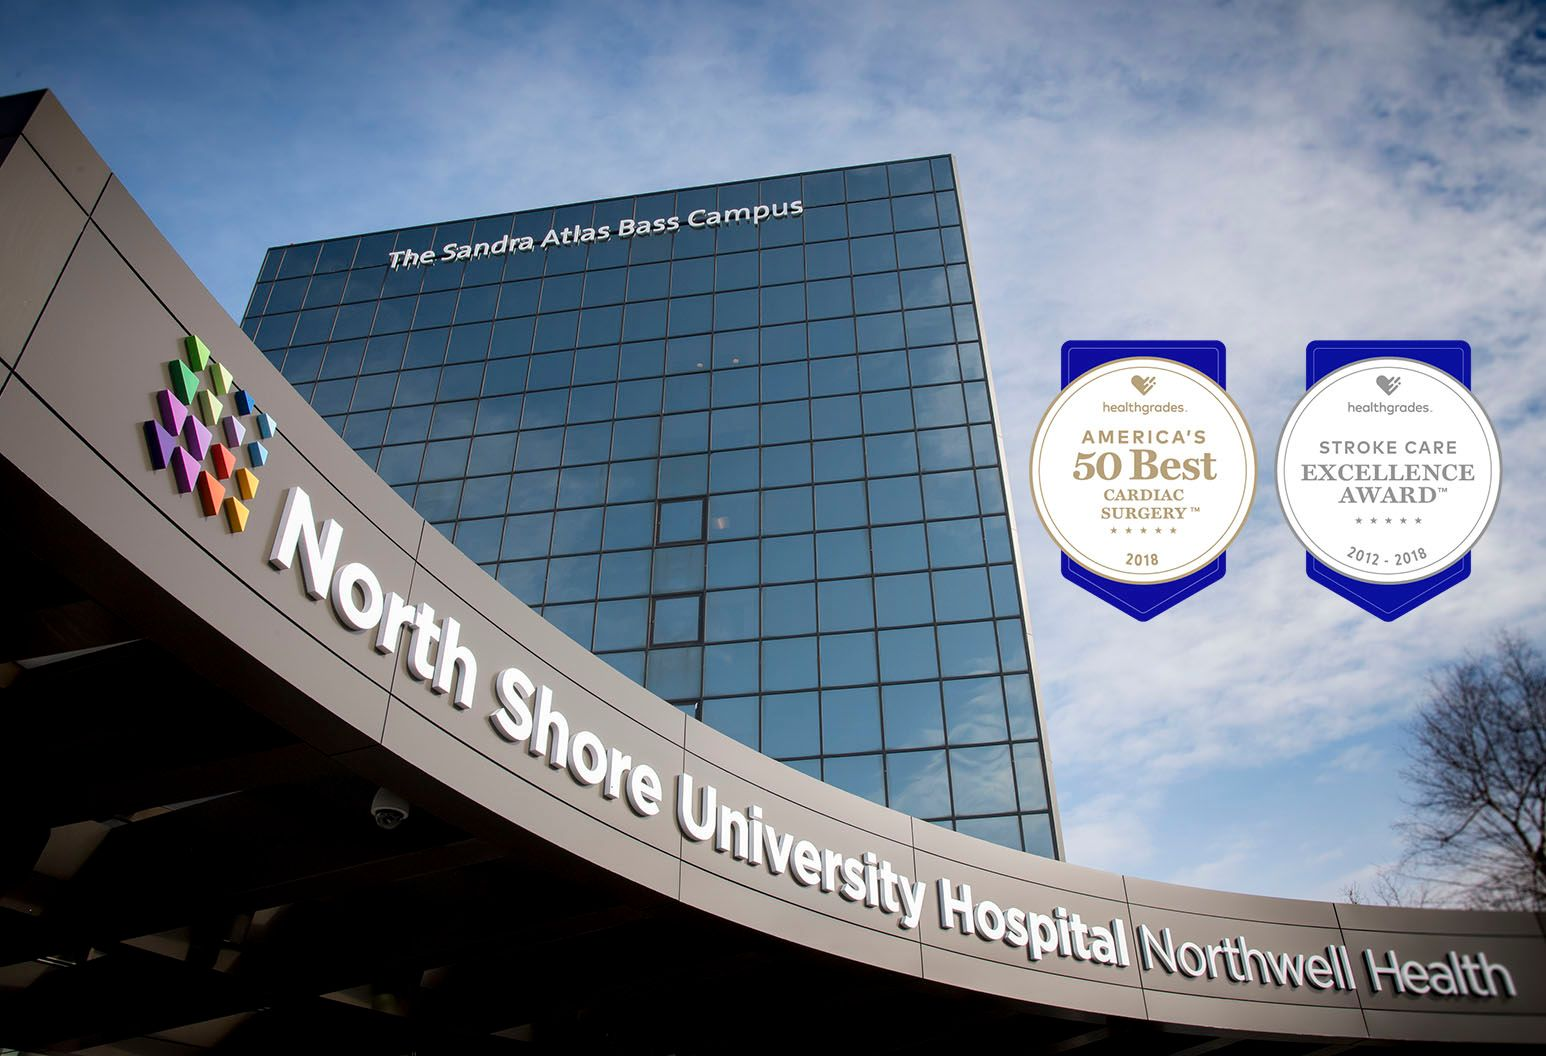 Exterior of North Shore University Hospital building with The Sandra Atlas Bass Campus building in the background